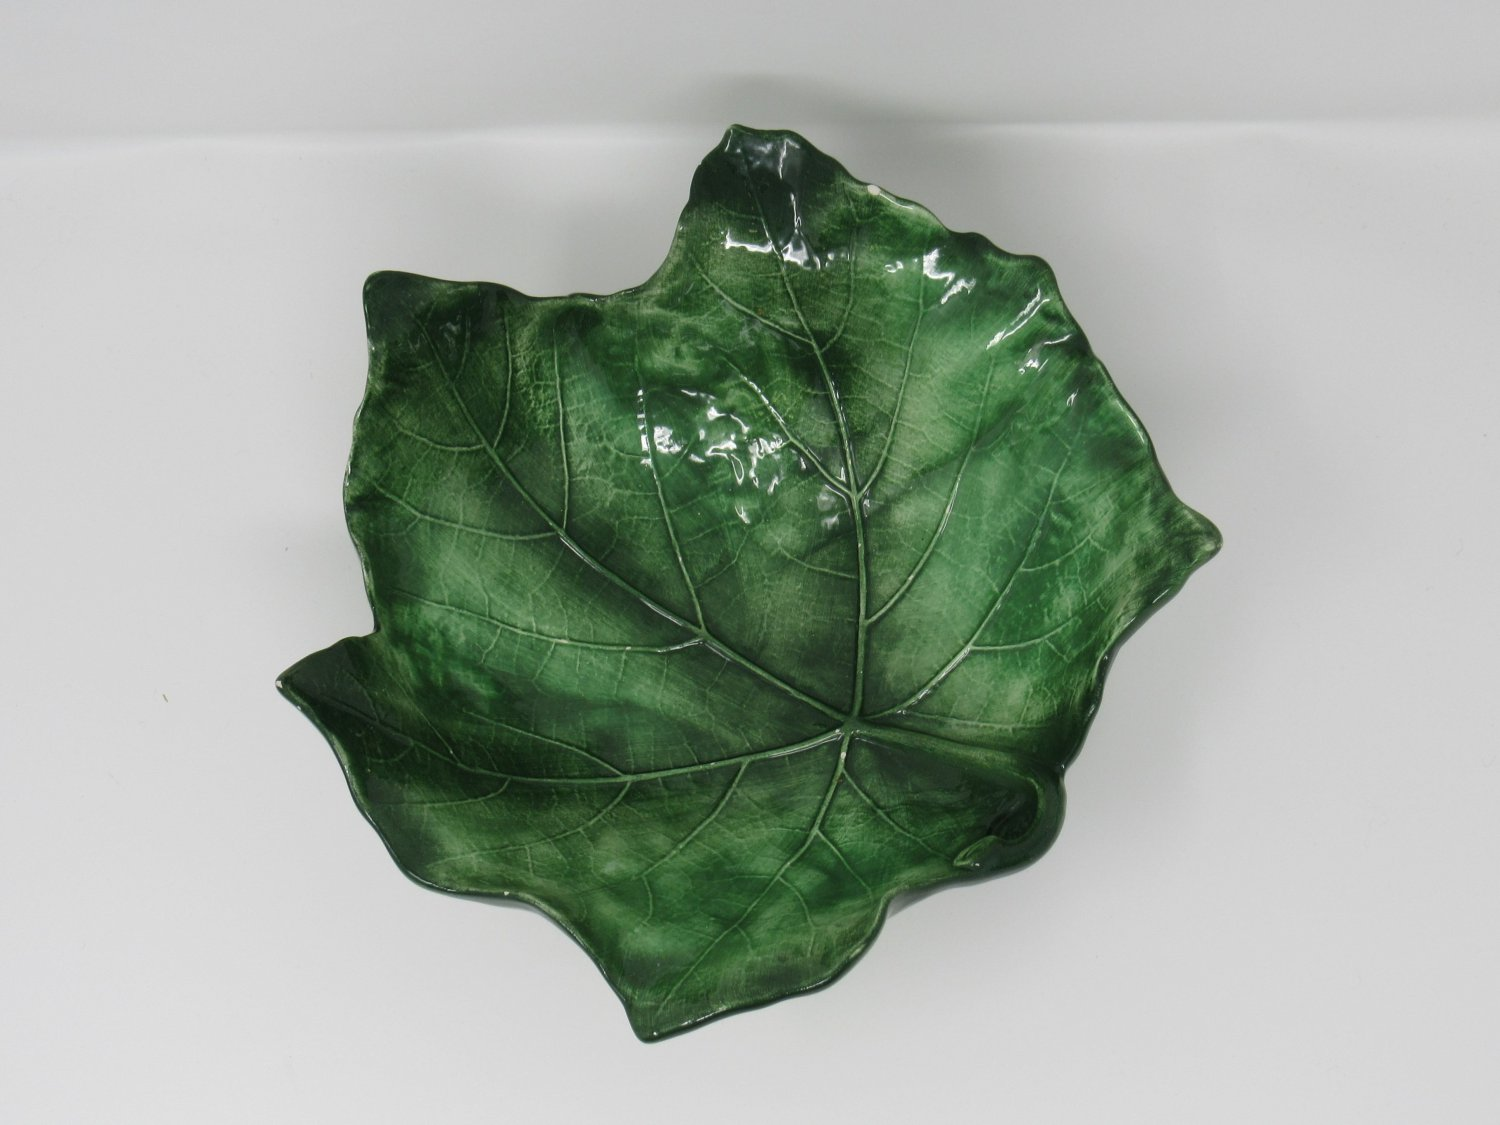 Handcrafted Hand Painted Leaf Candy Chip Bowl 9in L x 9in W x 4in H Green Italy